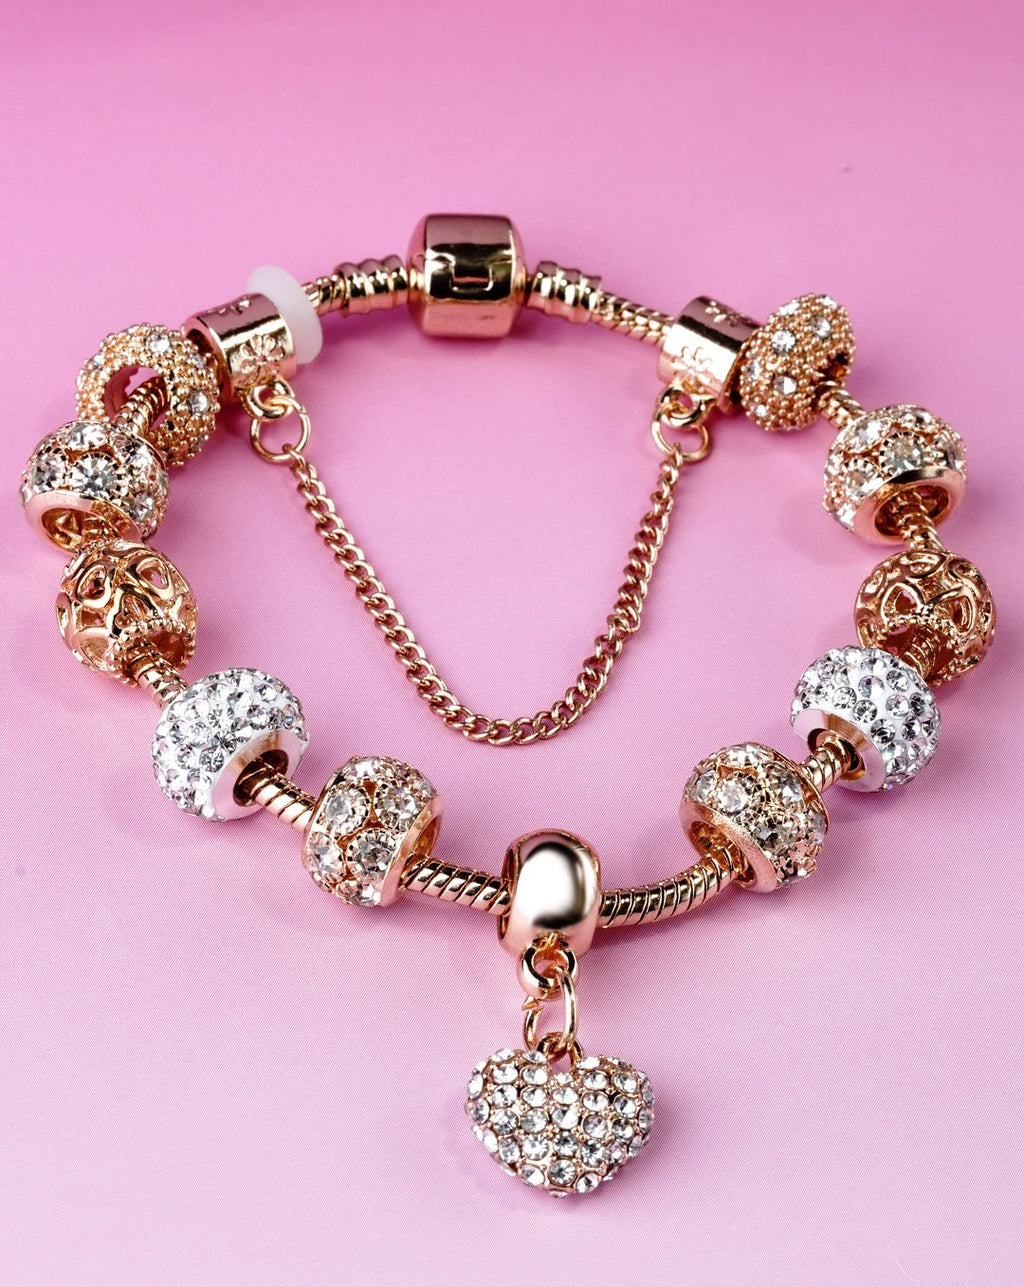 Myla - Gold Plated Charm Bracelet - Fashion Arks